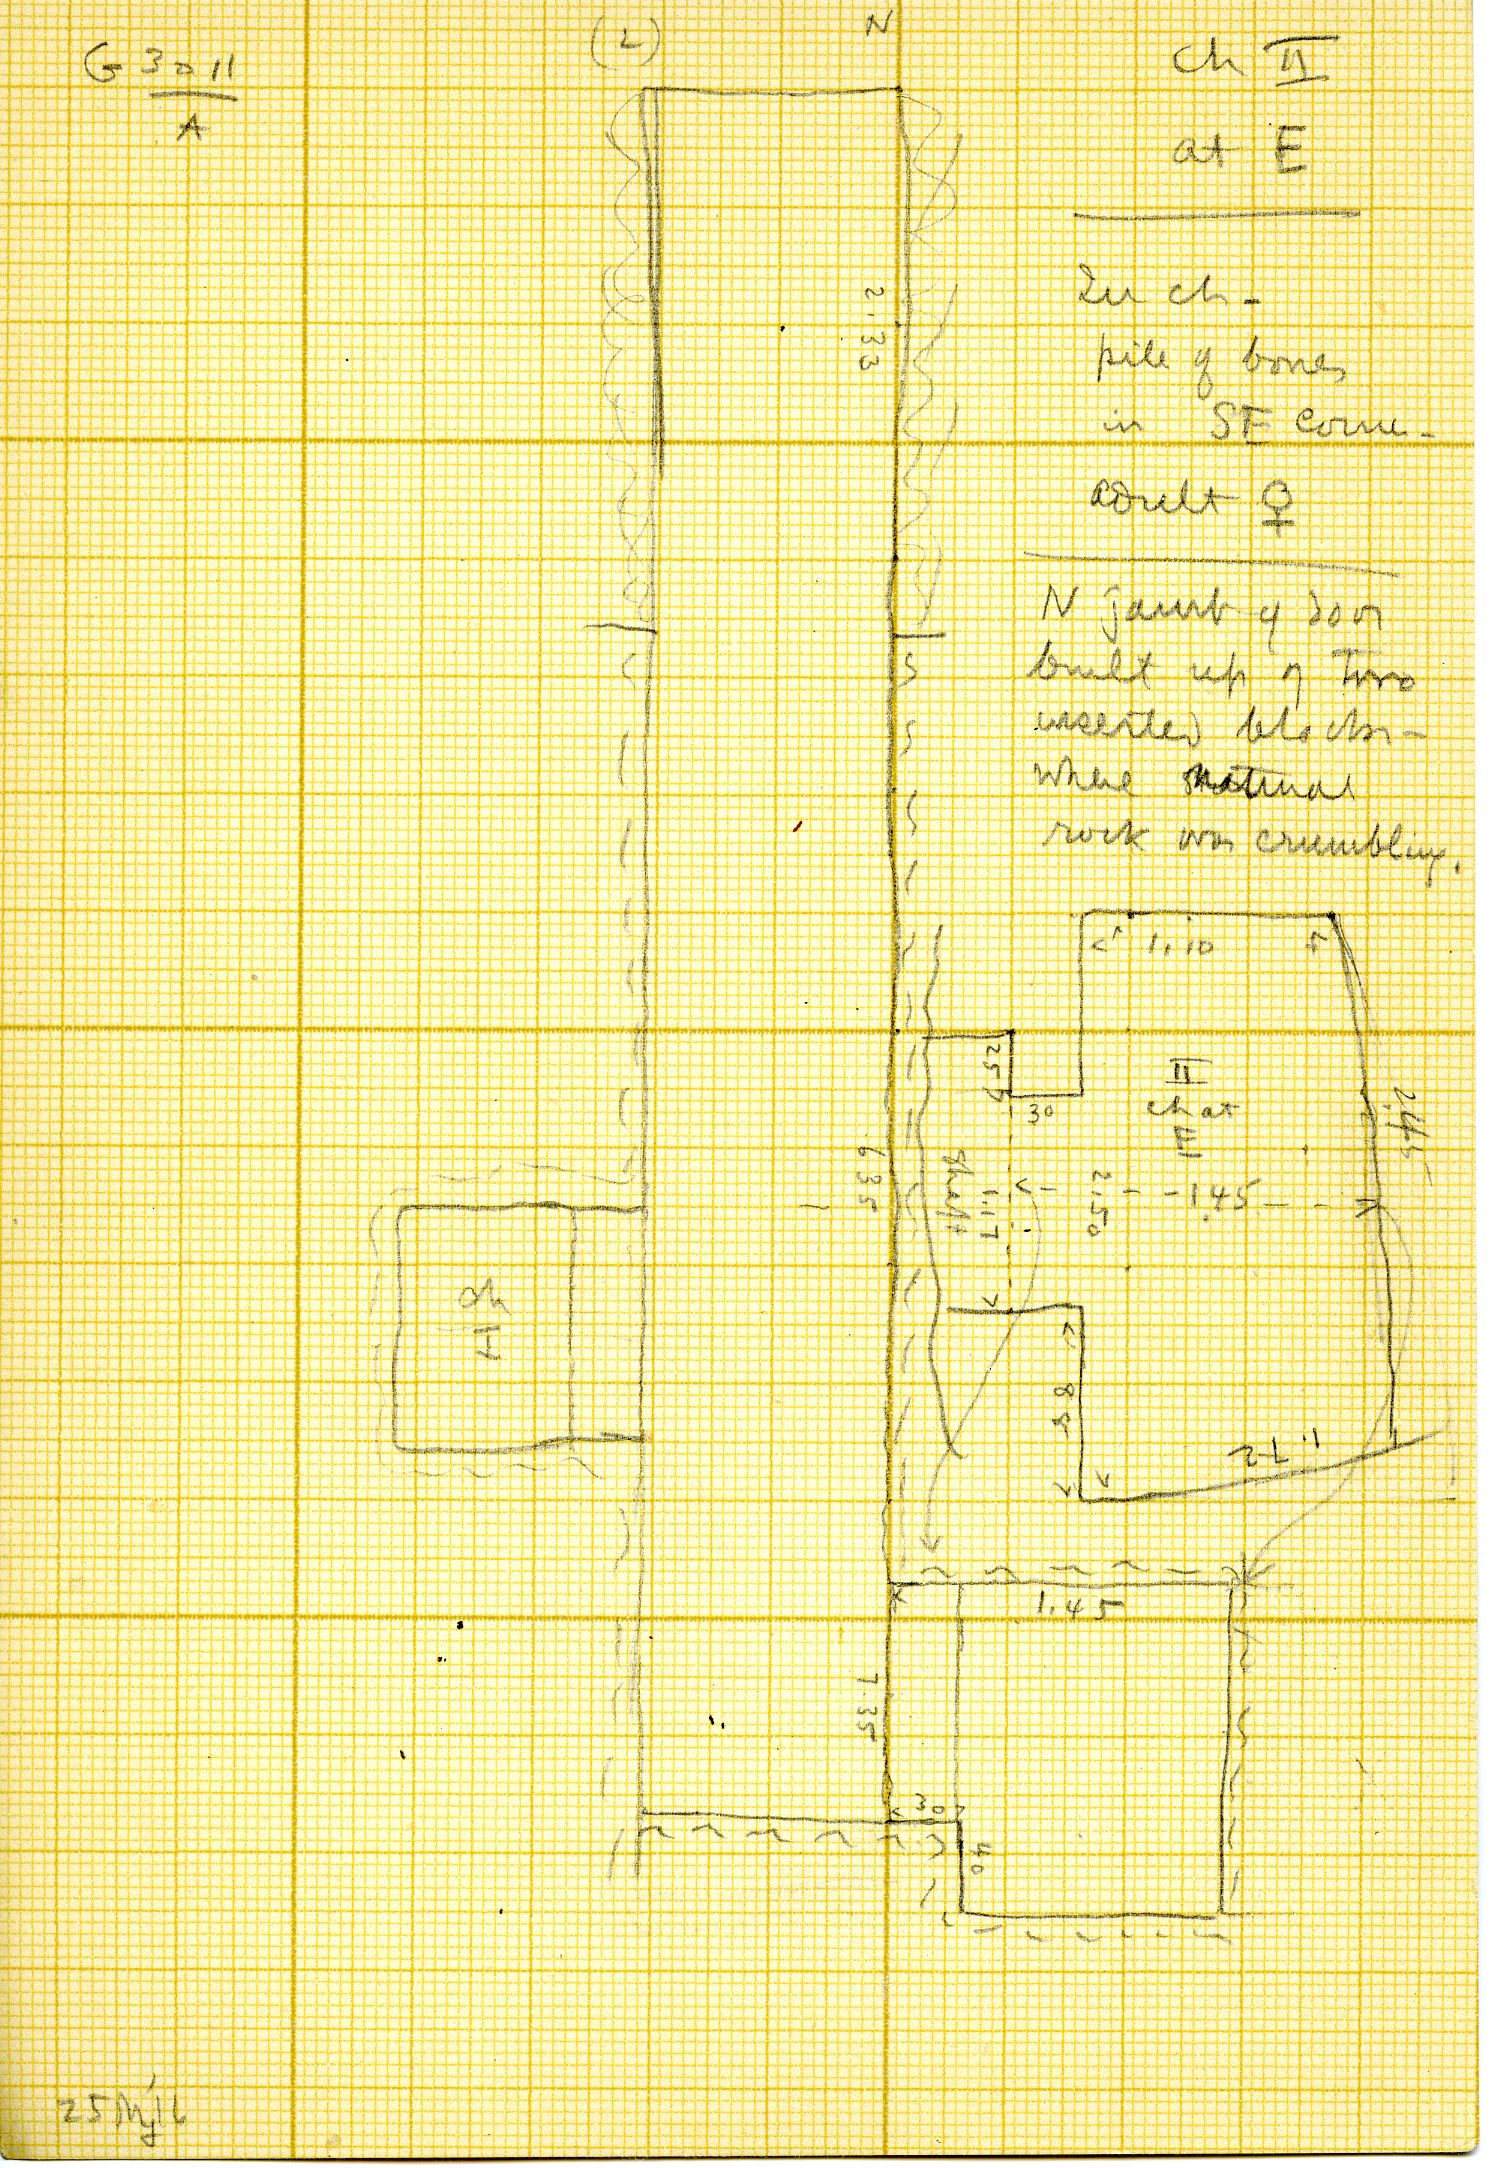 Maps and plans: G 3011, Shaft A